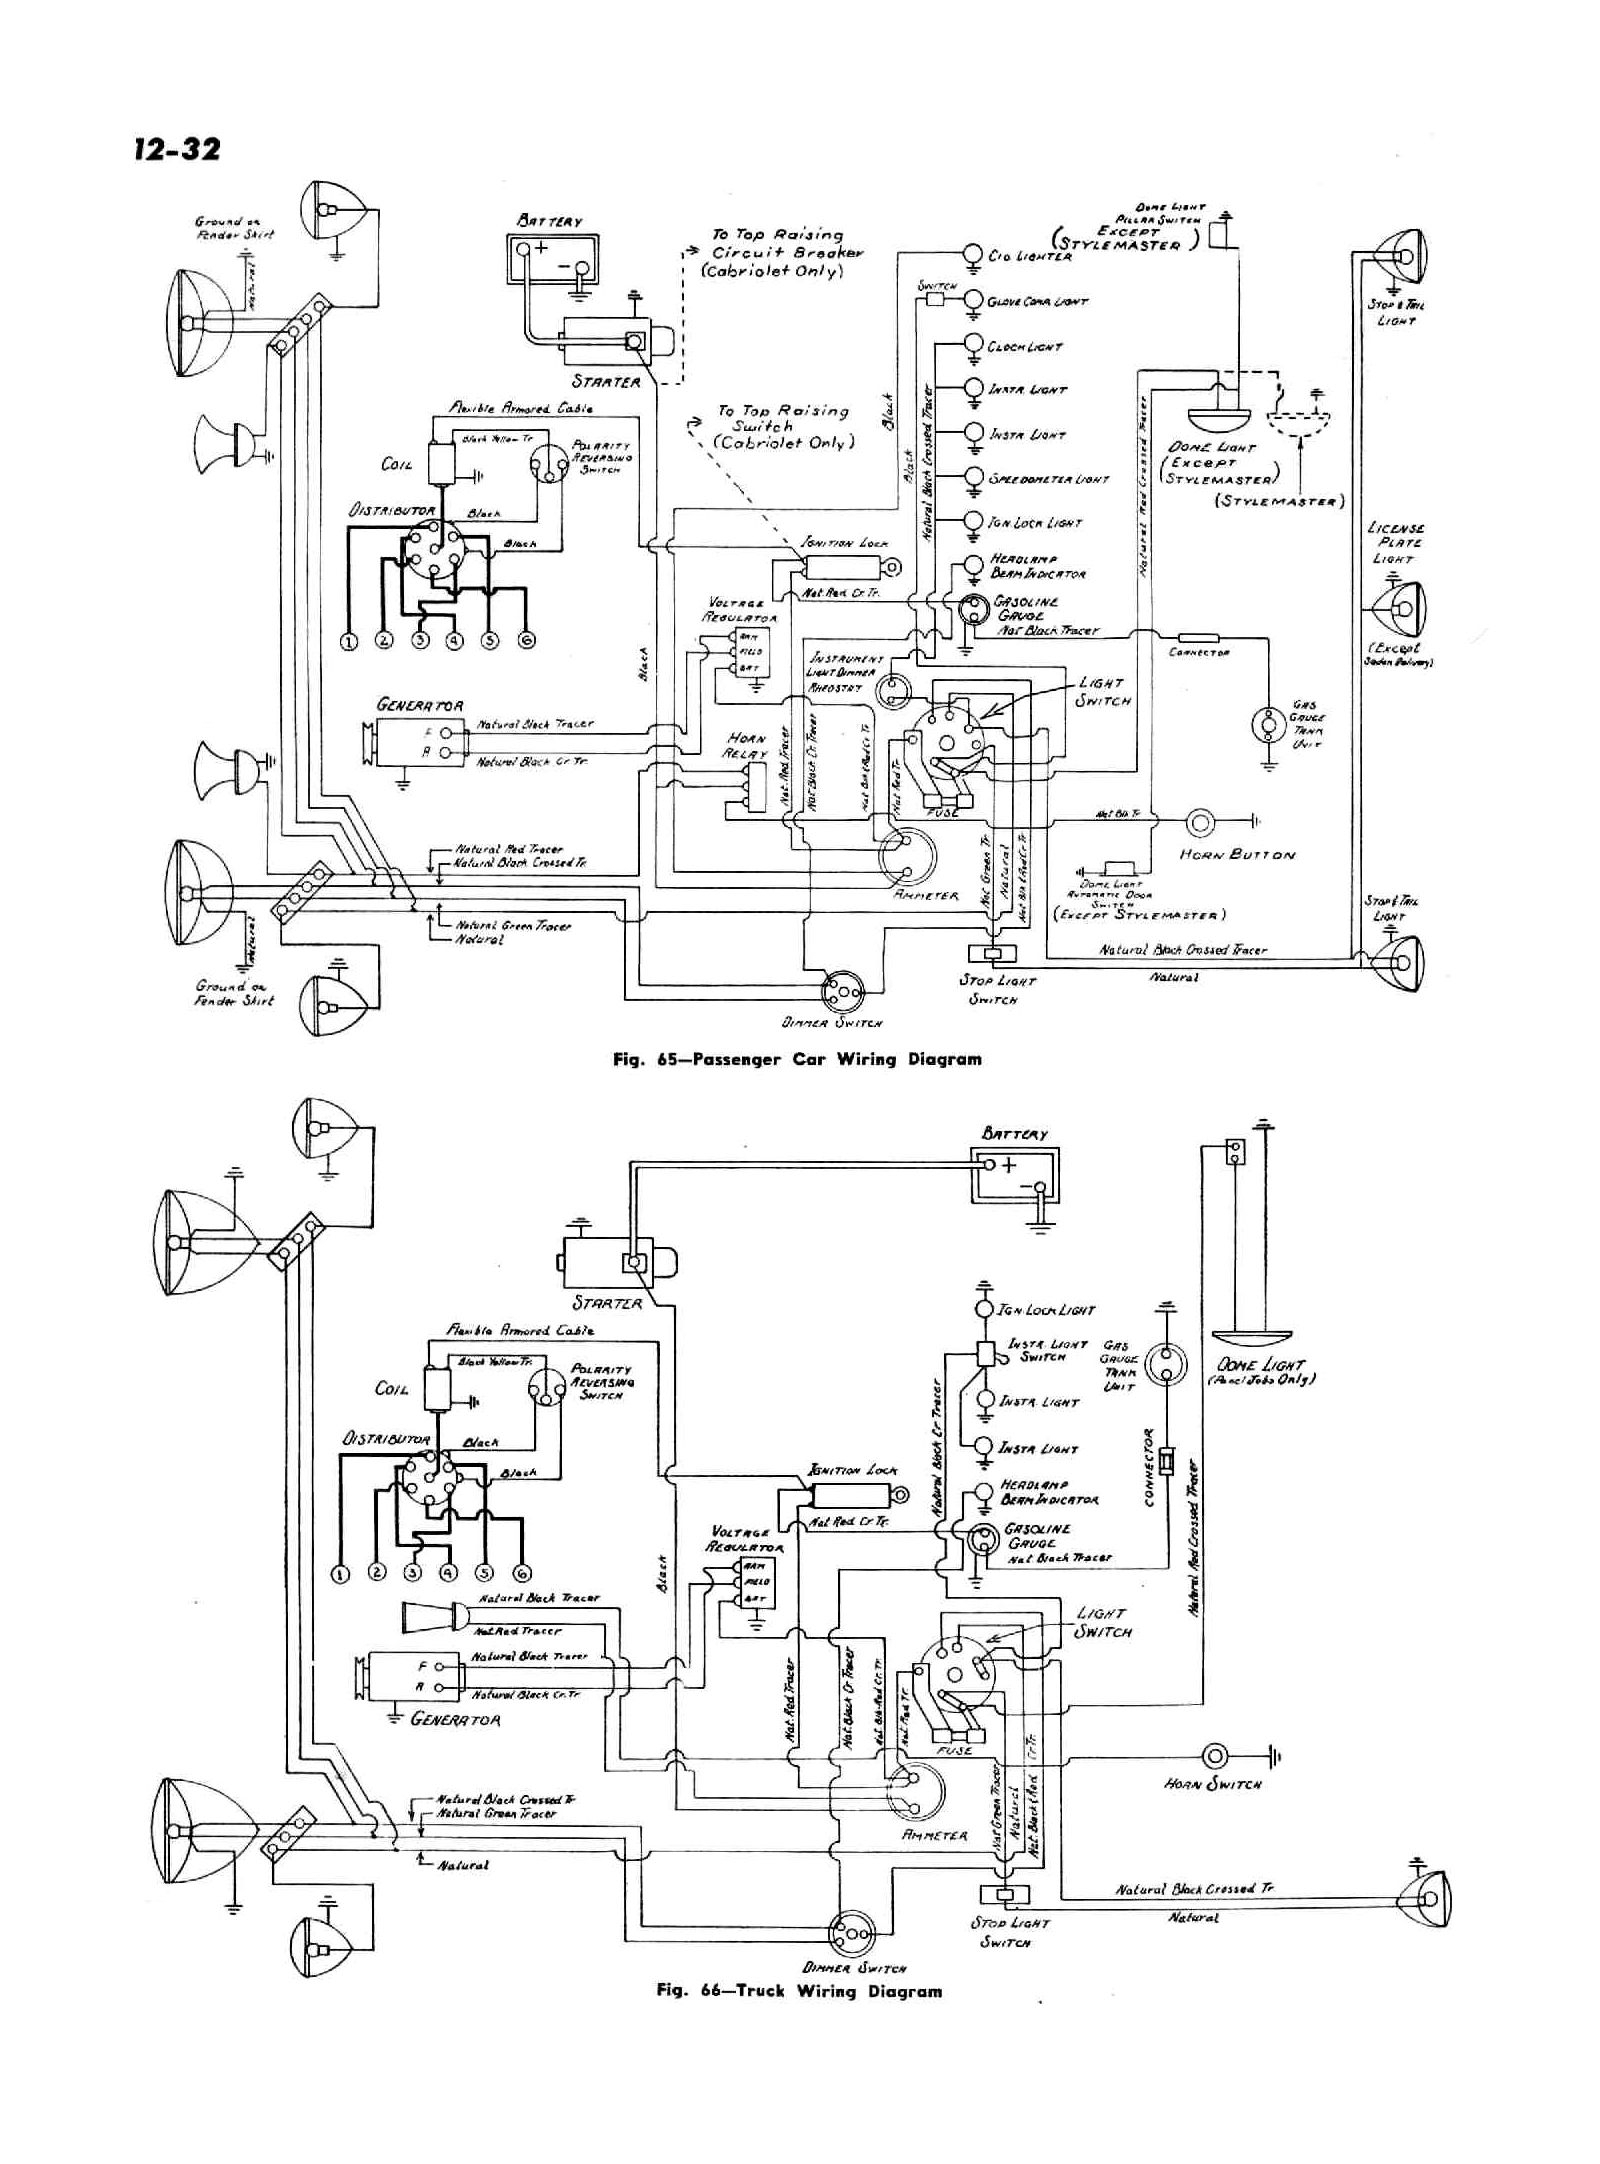 hight resolution of ih 1486 wiring diagram 1 5 pluspatrunoua de u2022ih 1486 wiring diagram best part of